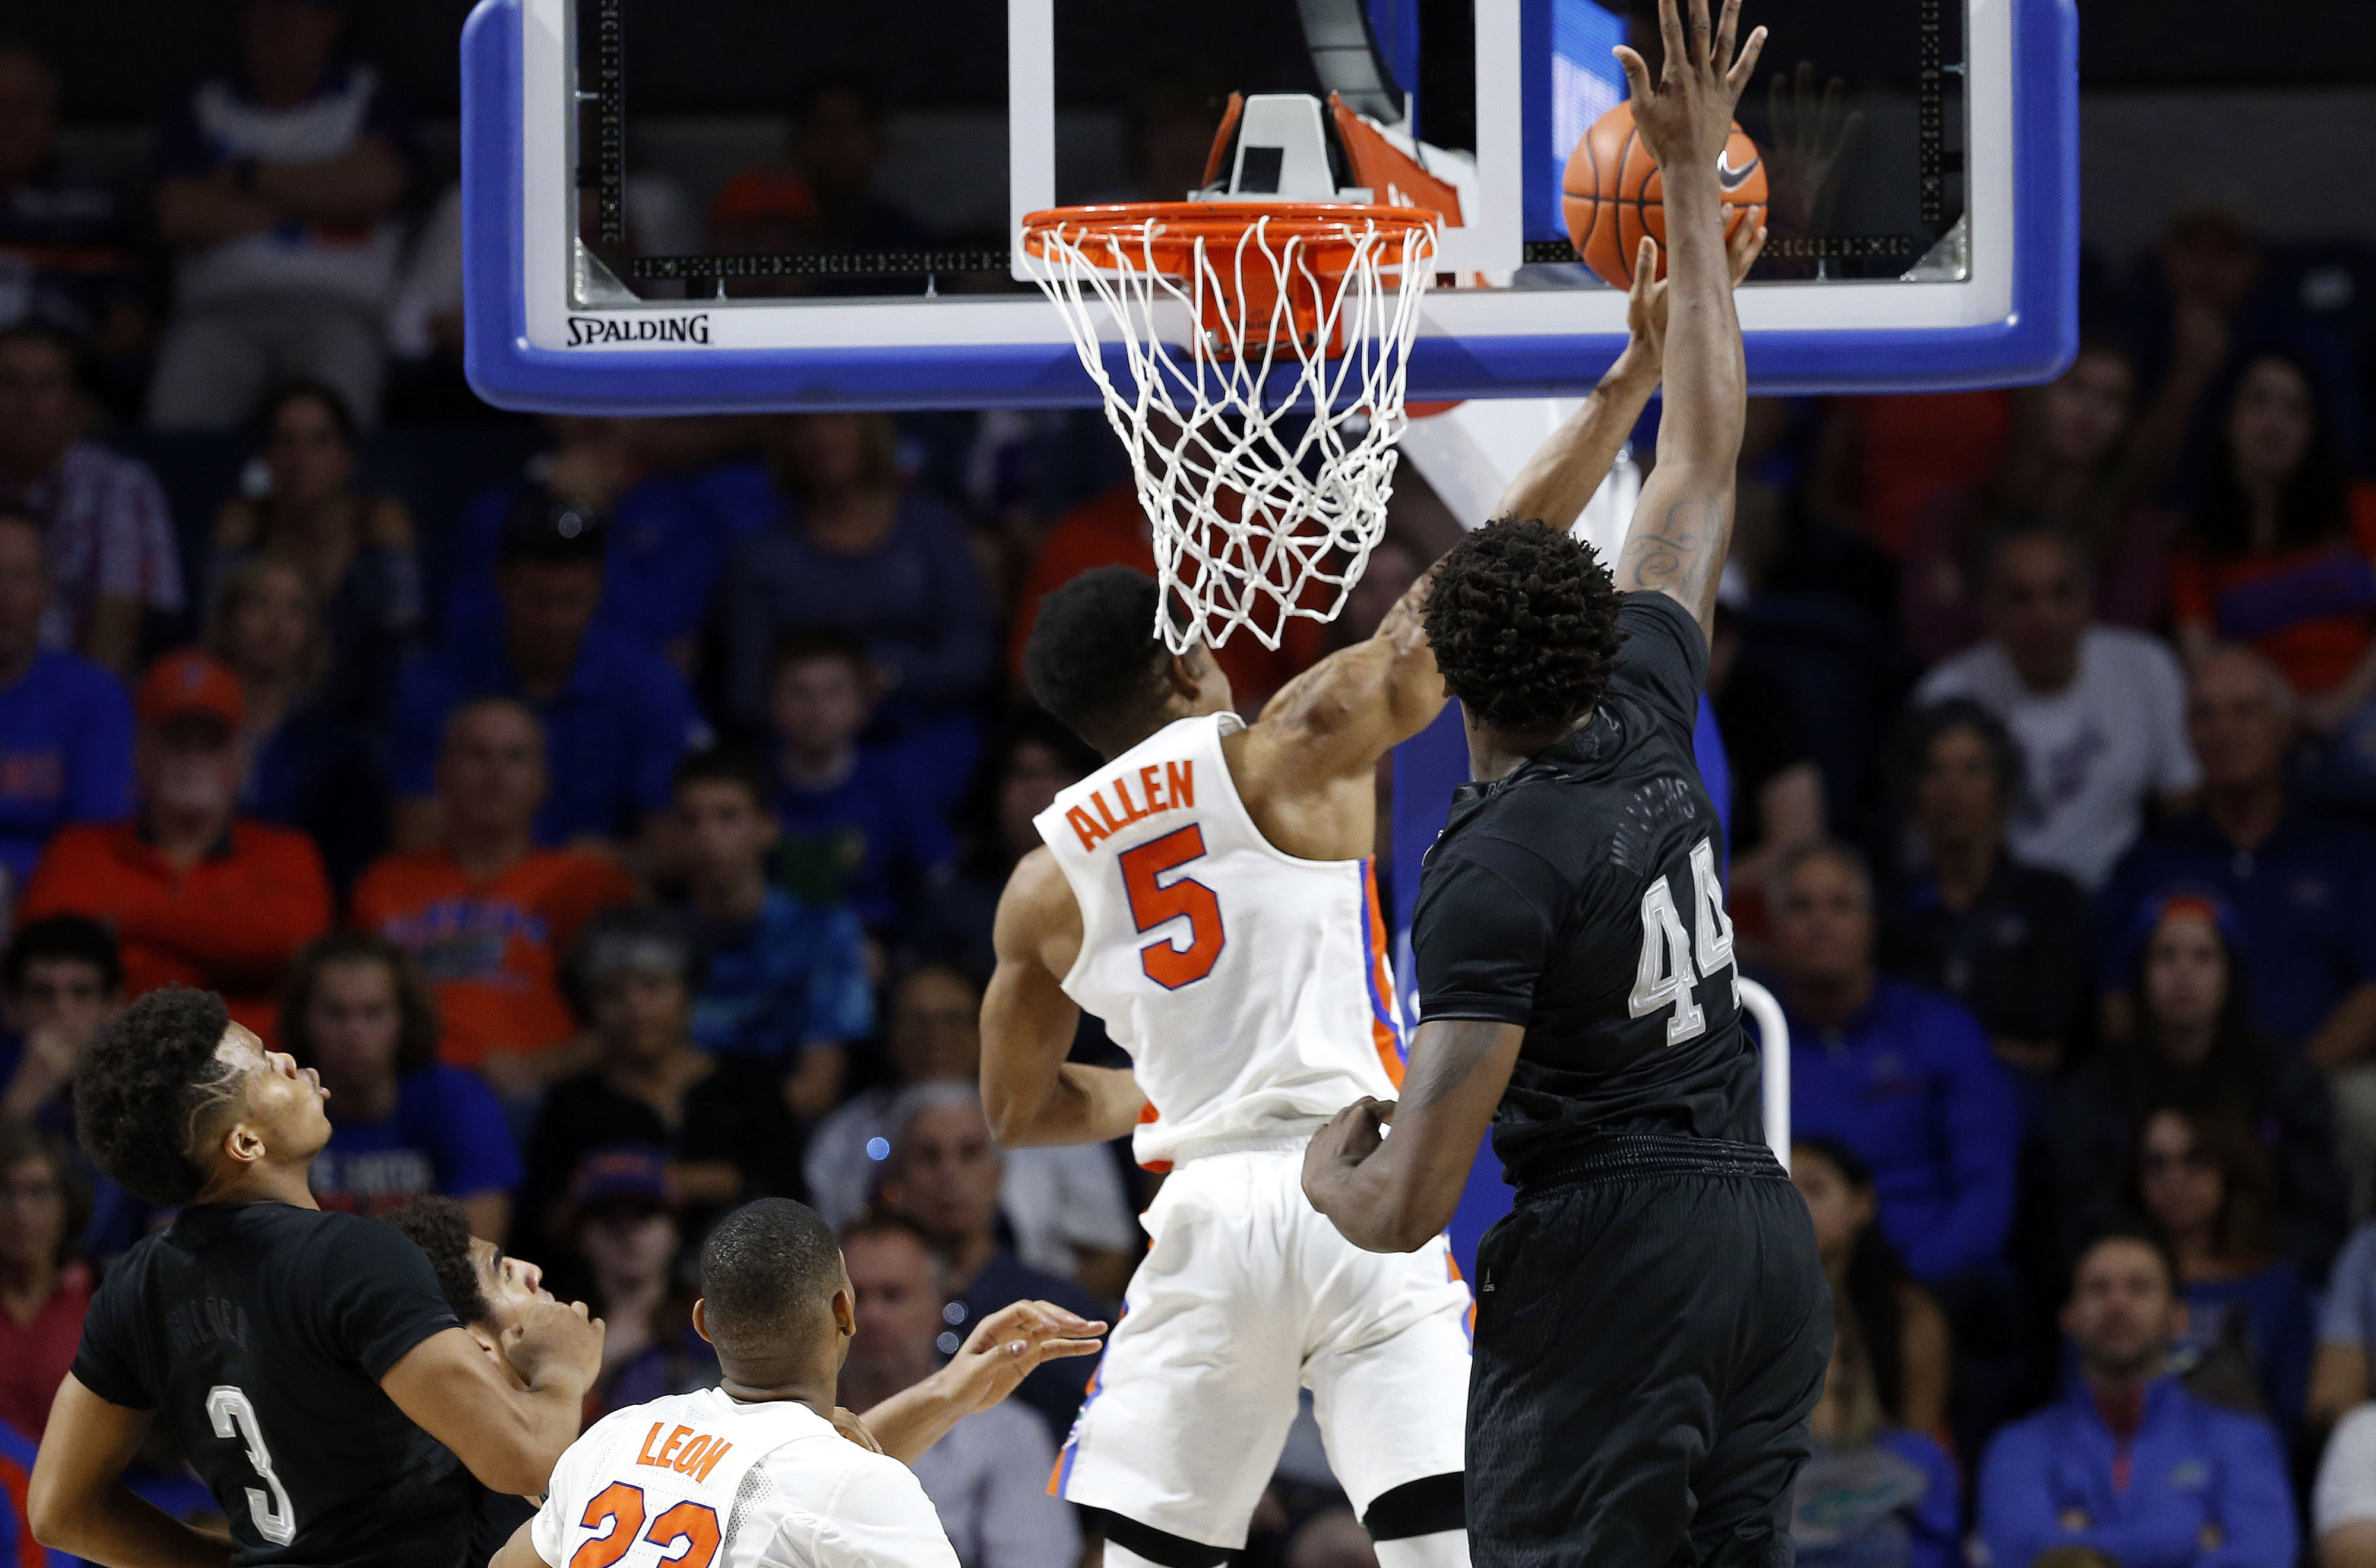 texas a m basketball robert williams should stay one more year robert williams has professional aspirations but one more season suiting up for the texas a m basketball team could go a long way towards his development